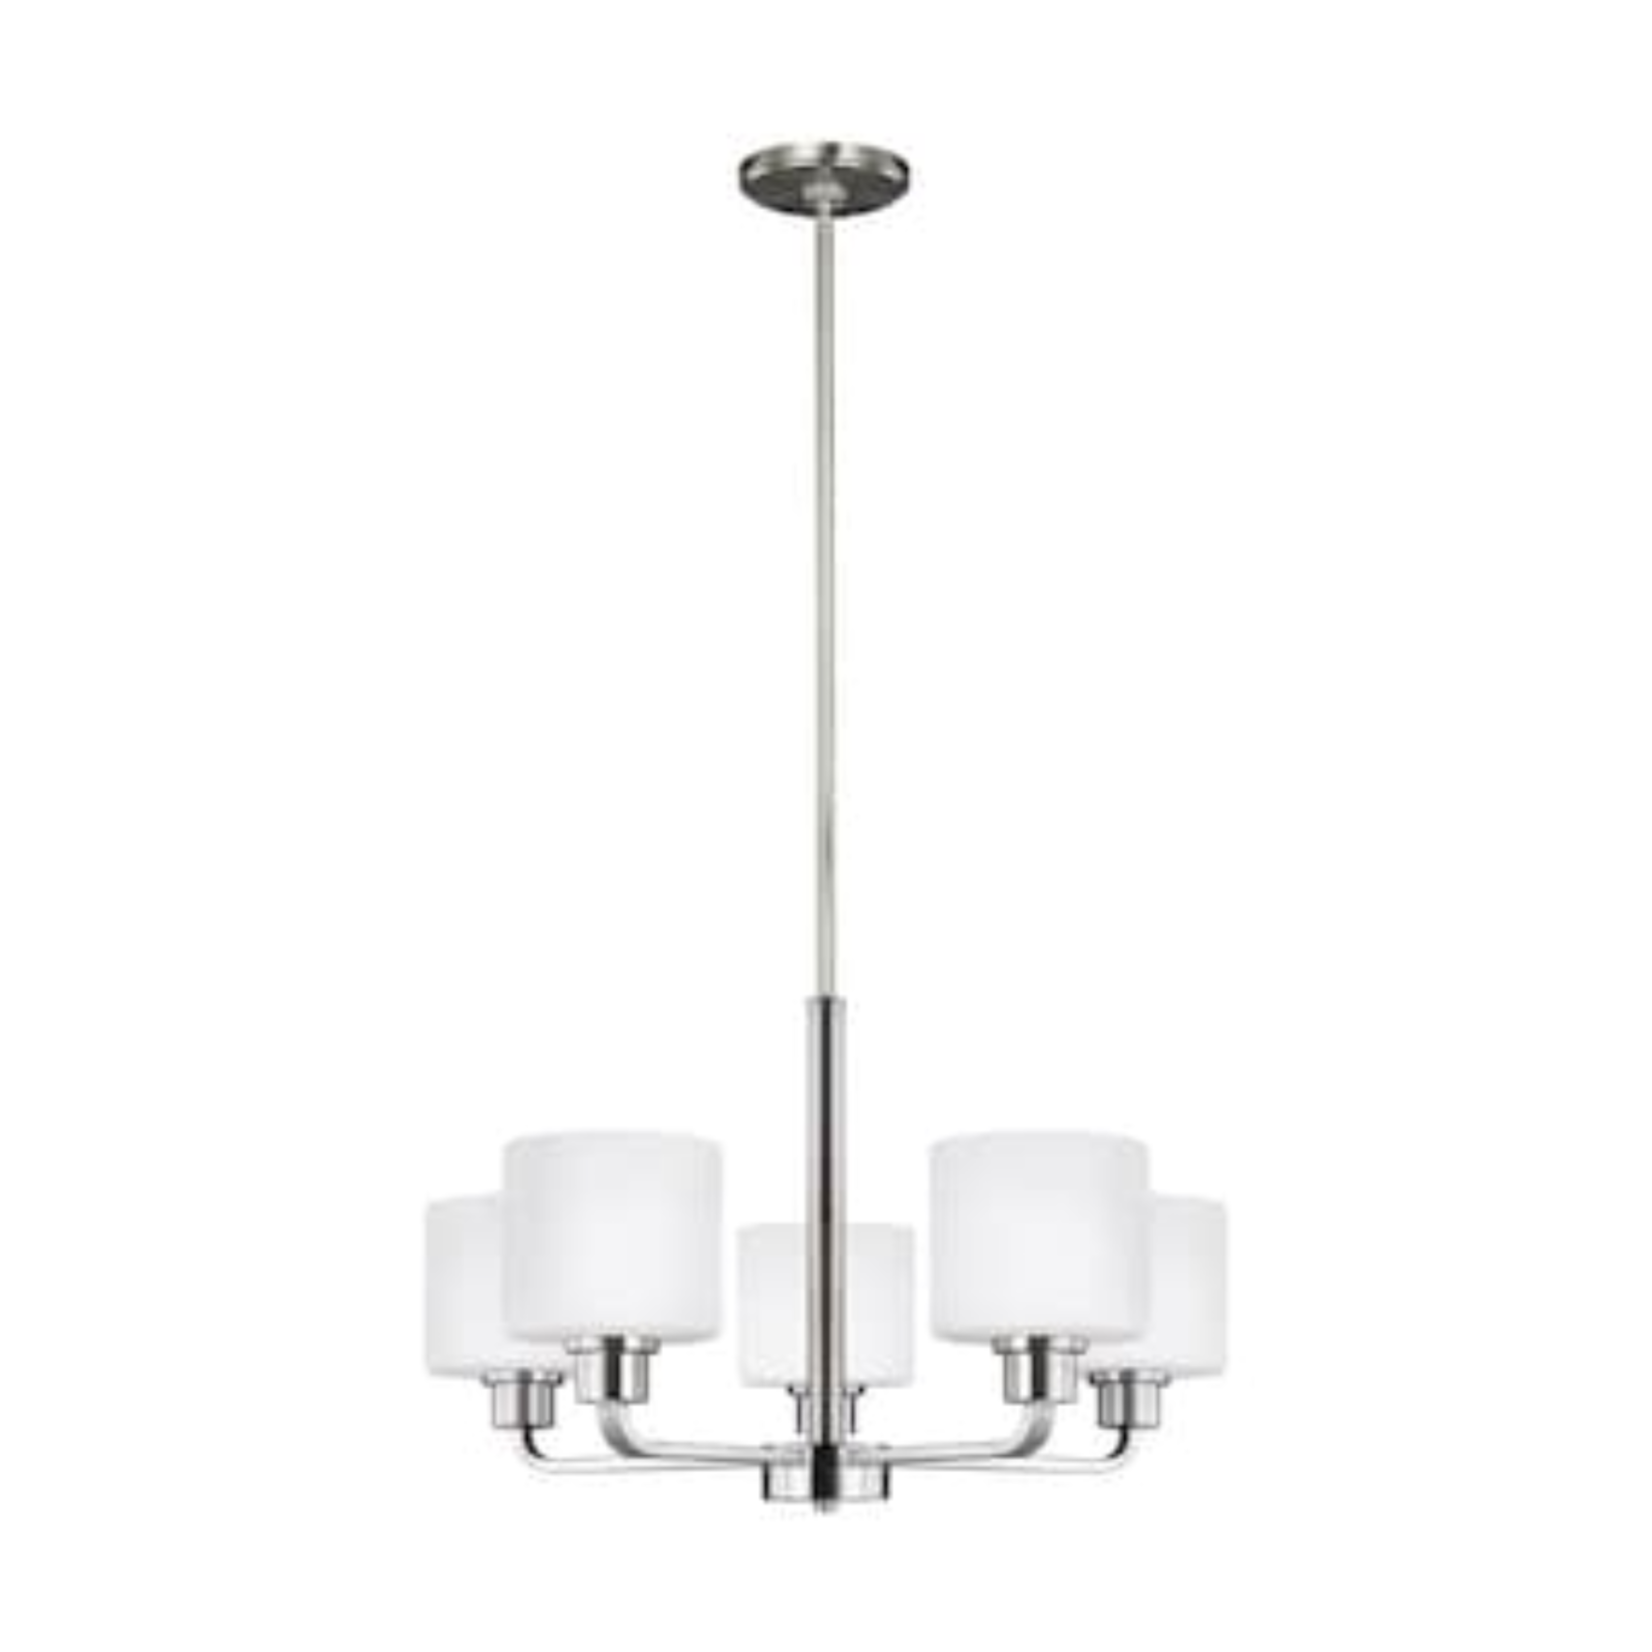 10515 Sea Gull Canfield 5-Light Brushed Nickel Chandelier